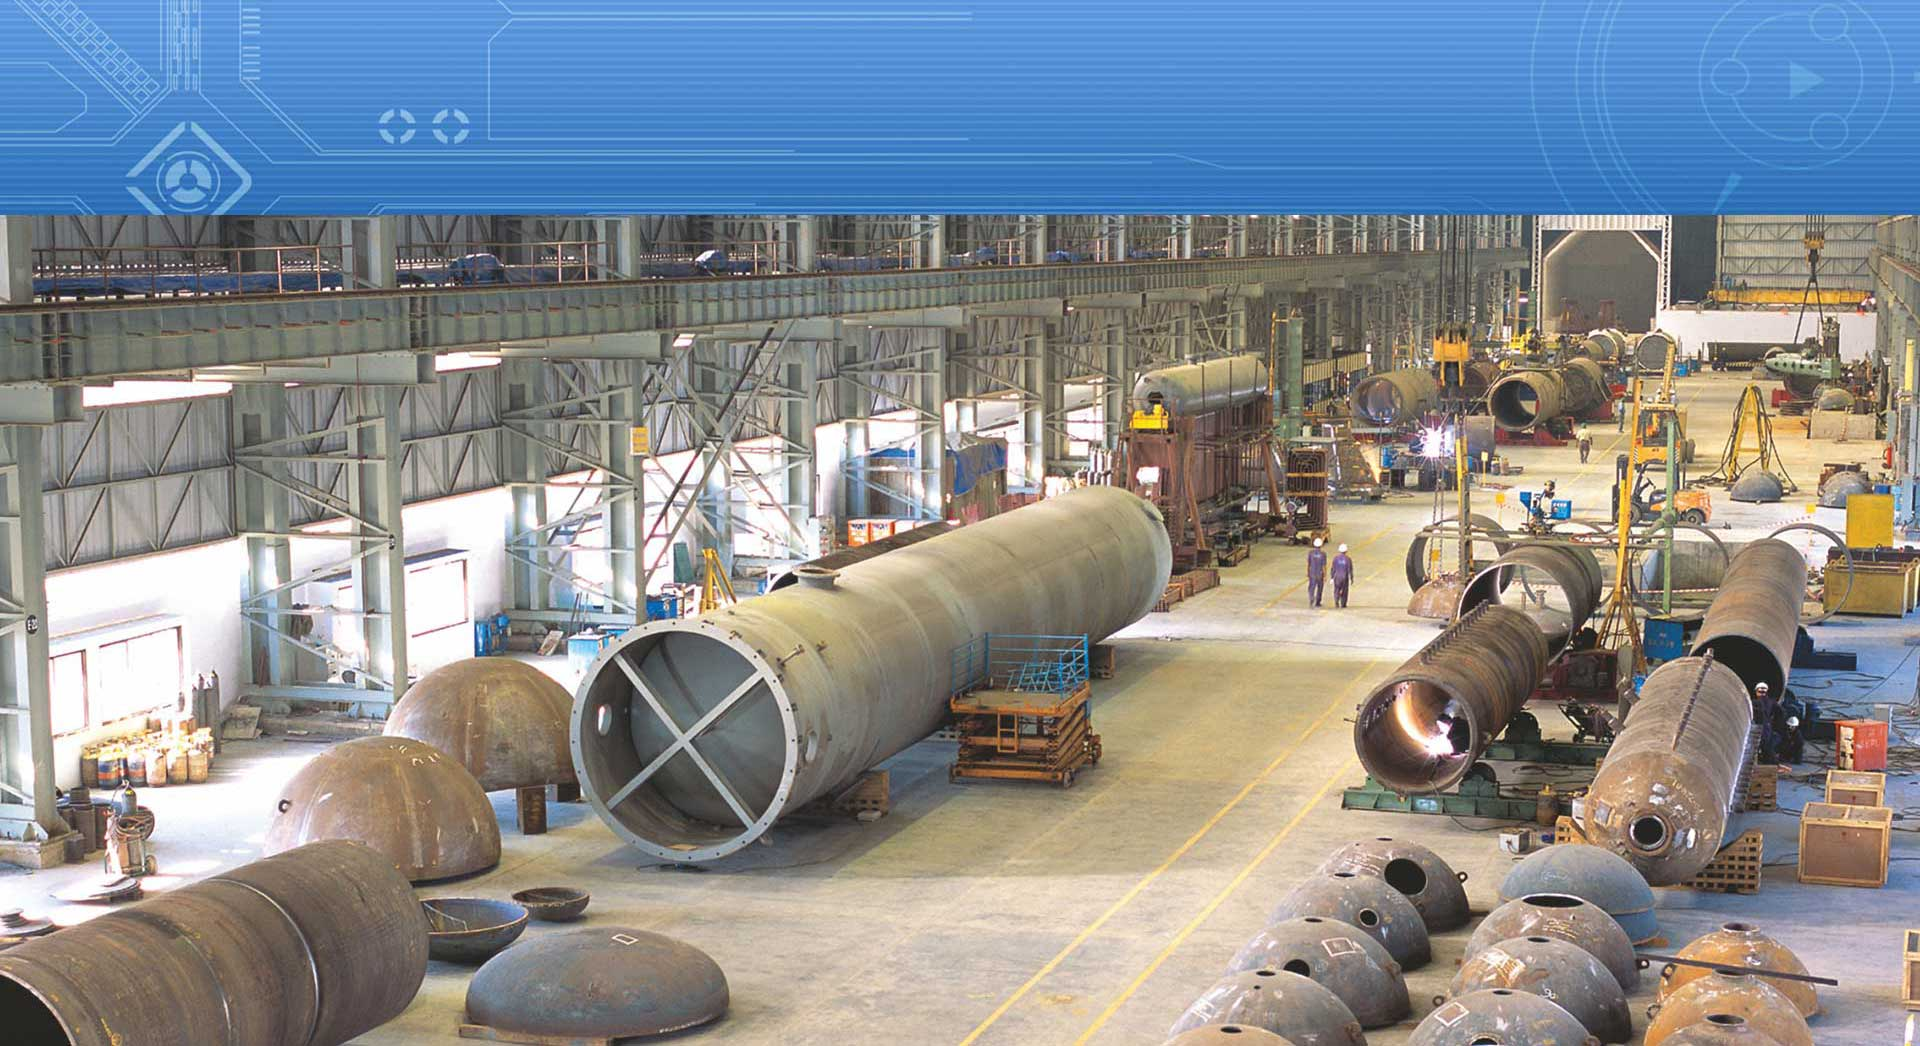 Used Industrial Equipment near Your Areas